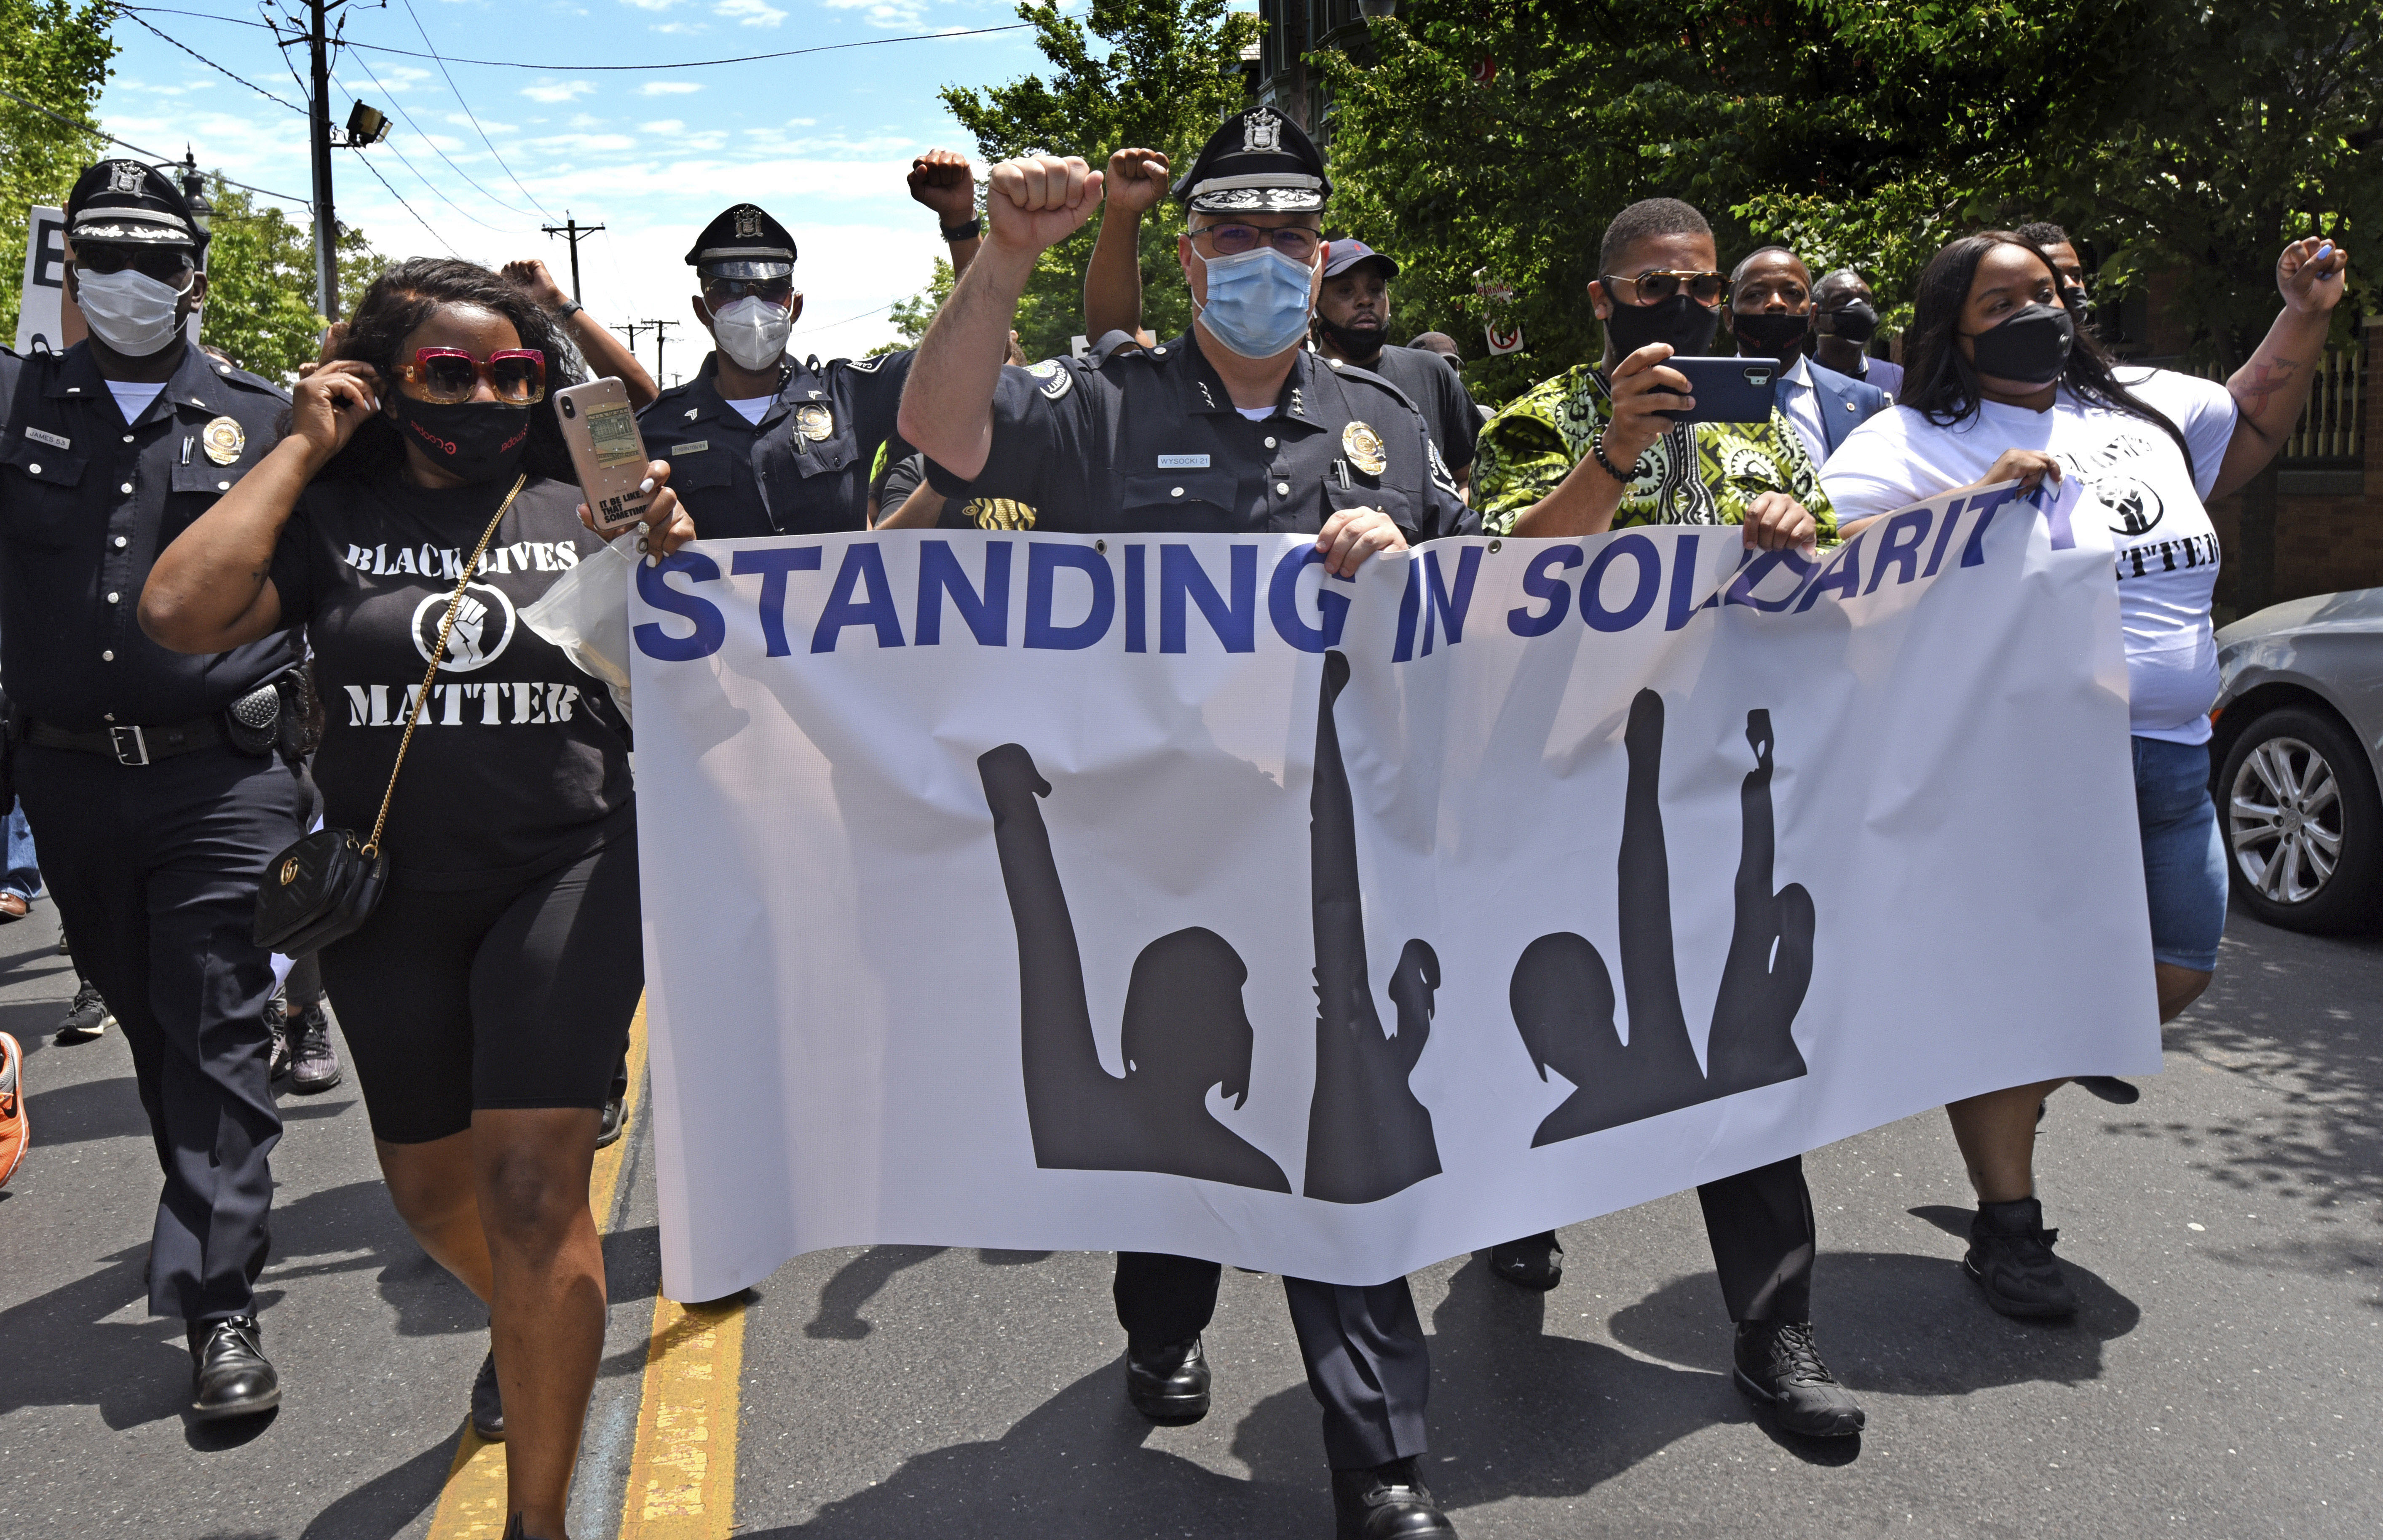 Camden County Chief of Police Joe Wysocki, center, marches with residents and activists in Camden, New Jersey, on May 30, during a protest against the death of George Floyd.